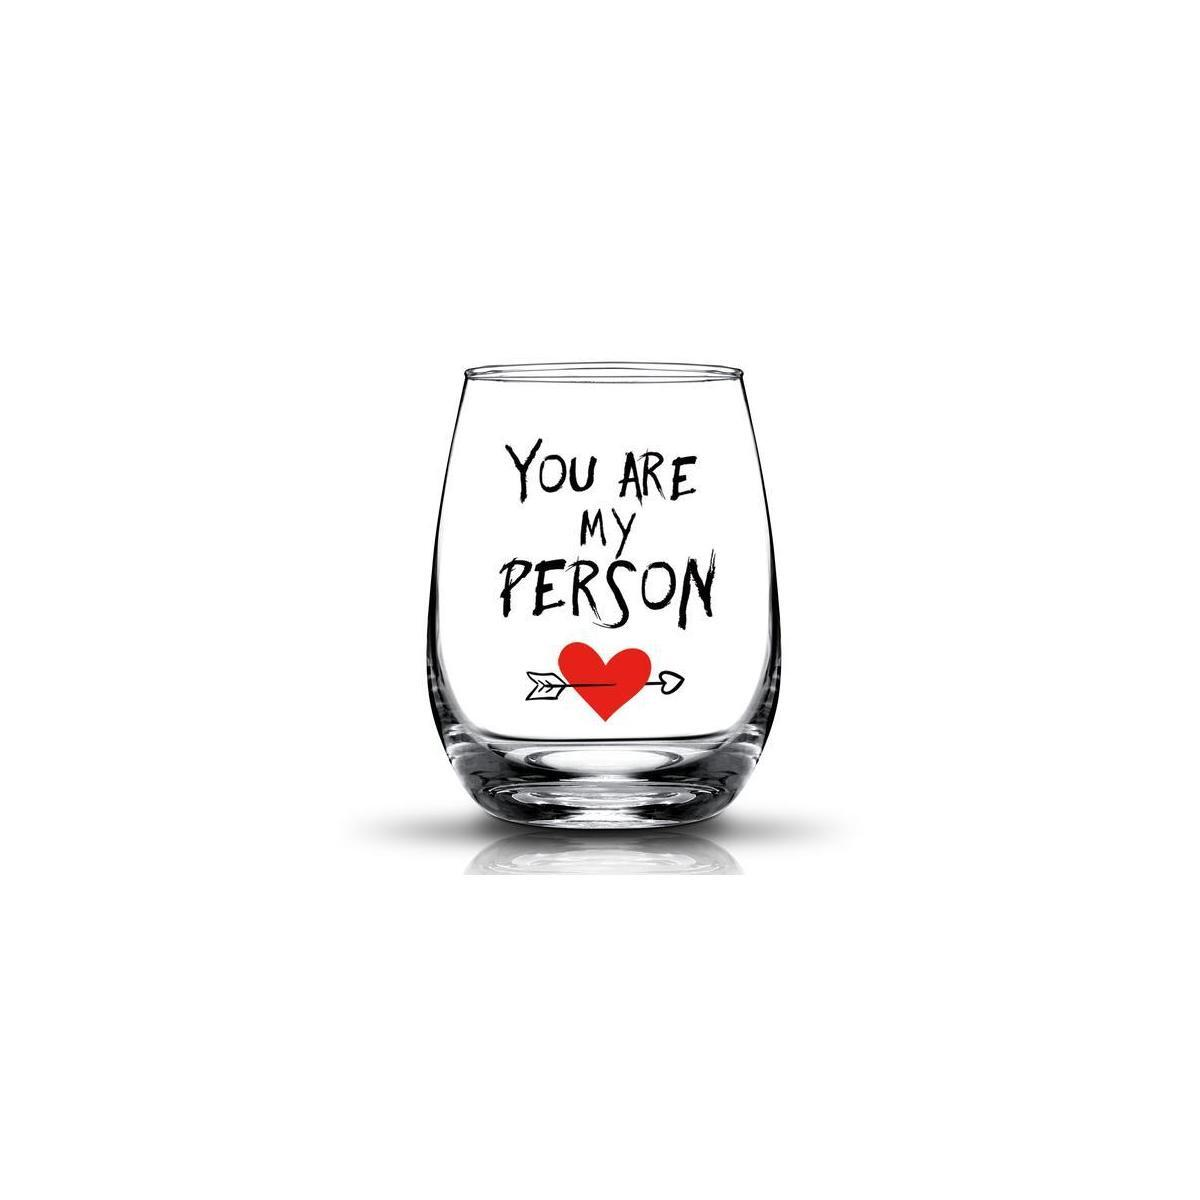 You're My Person Gift For Best Friend BFF Gifts Birthday Gifts for Girlfriend, Woman Her,Wife 15oz Stemless Wine Glass